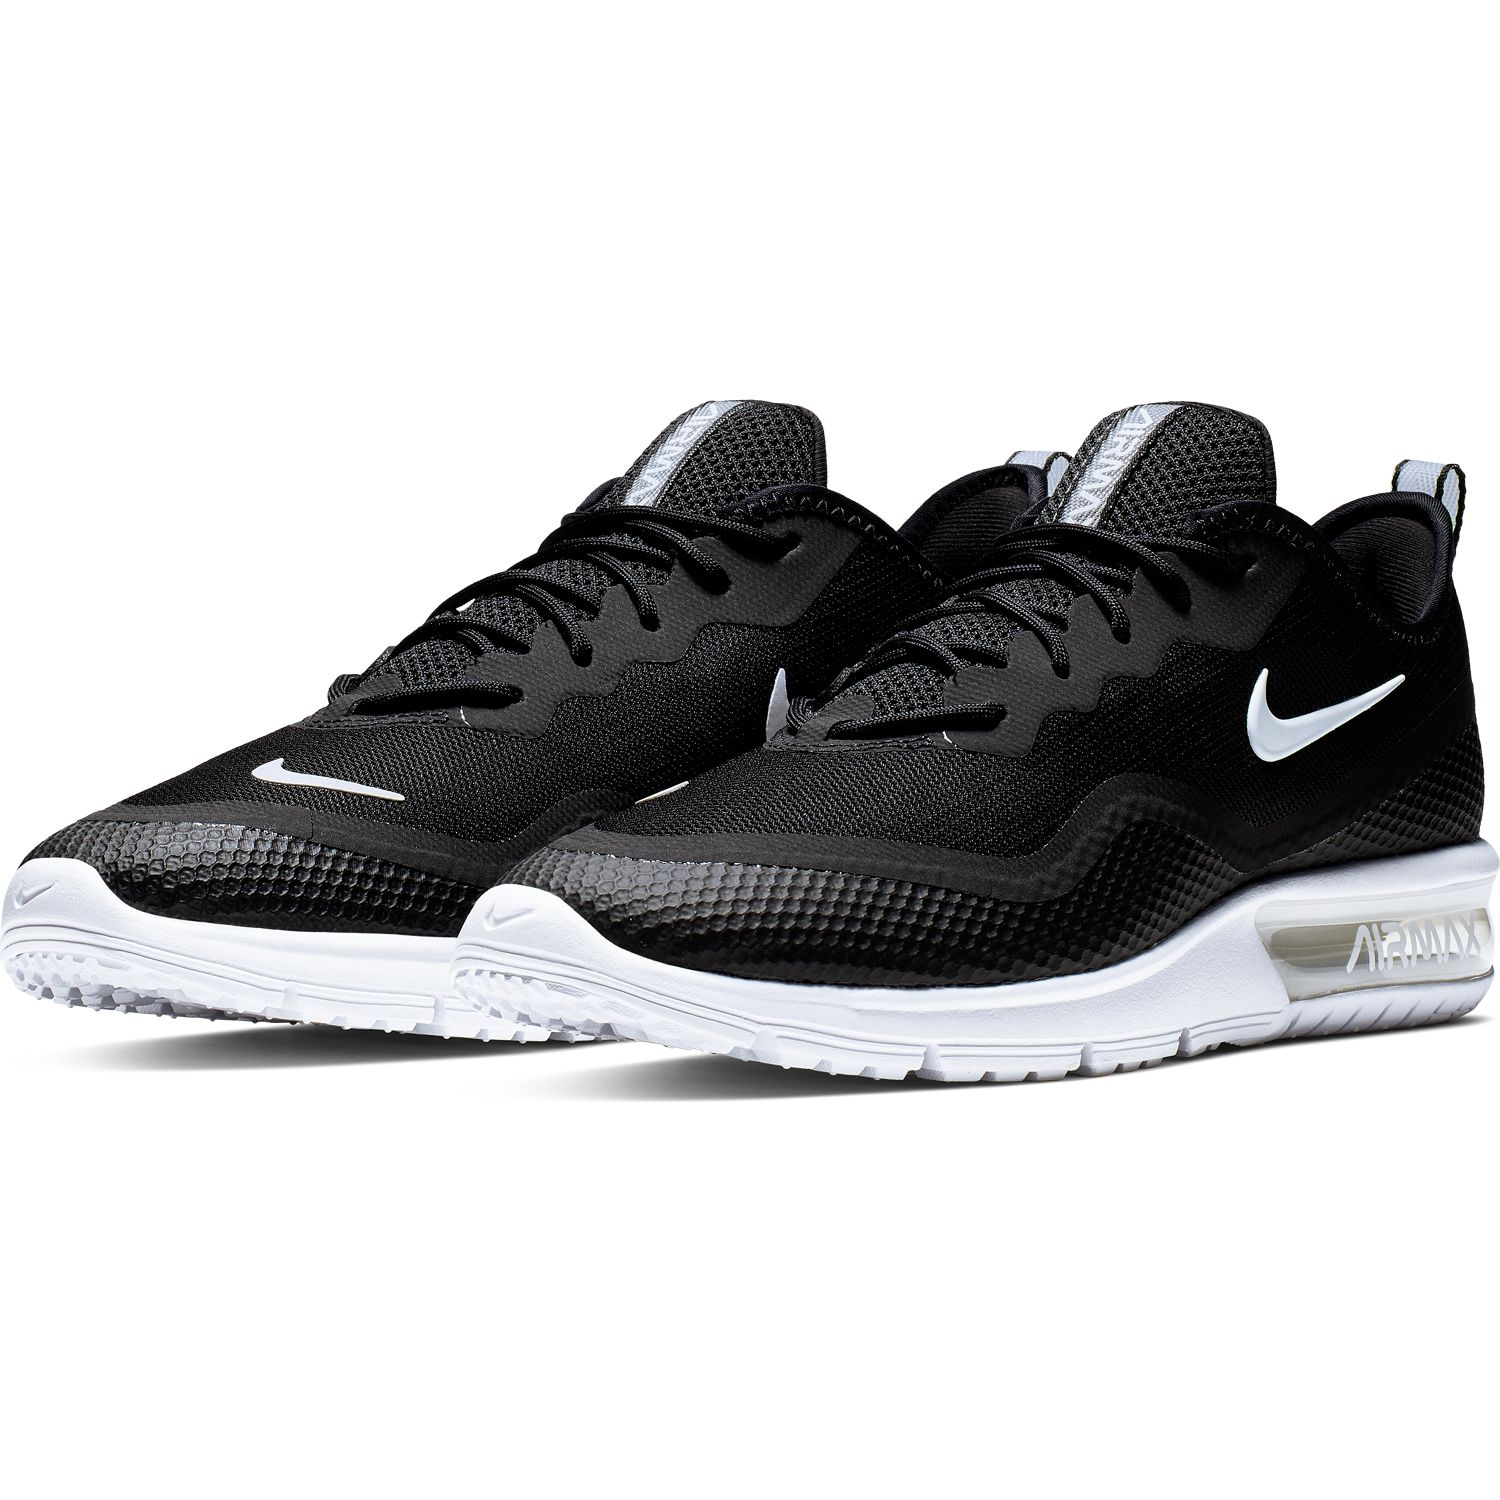 Nike Air Max Sequent 4 Shield | AV3236 001